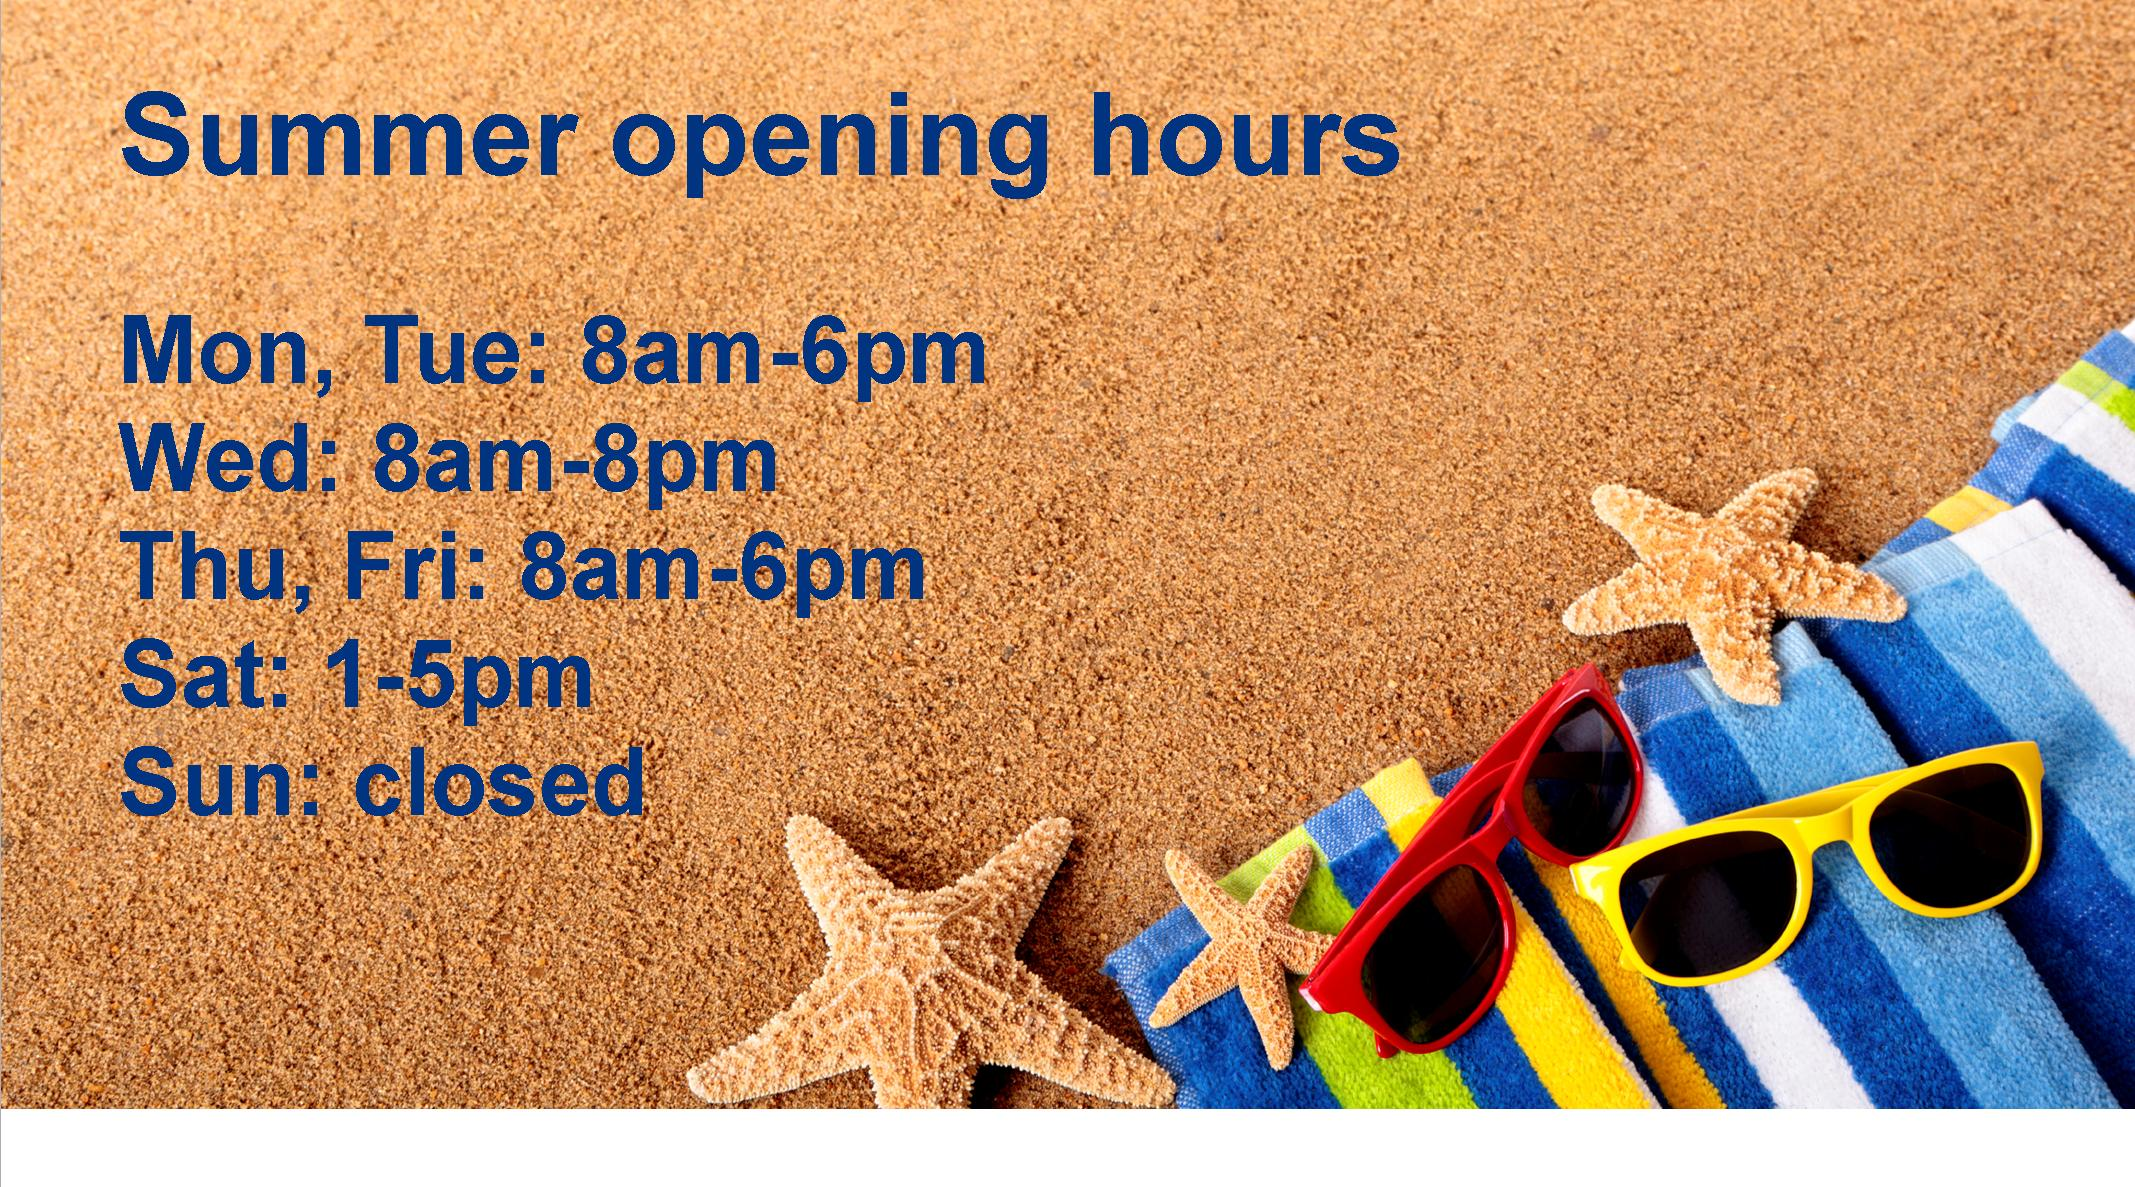 opening hours summer wallpaper - photo #4